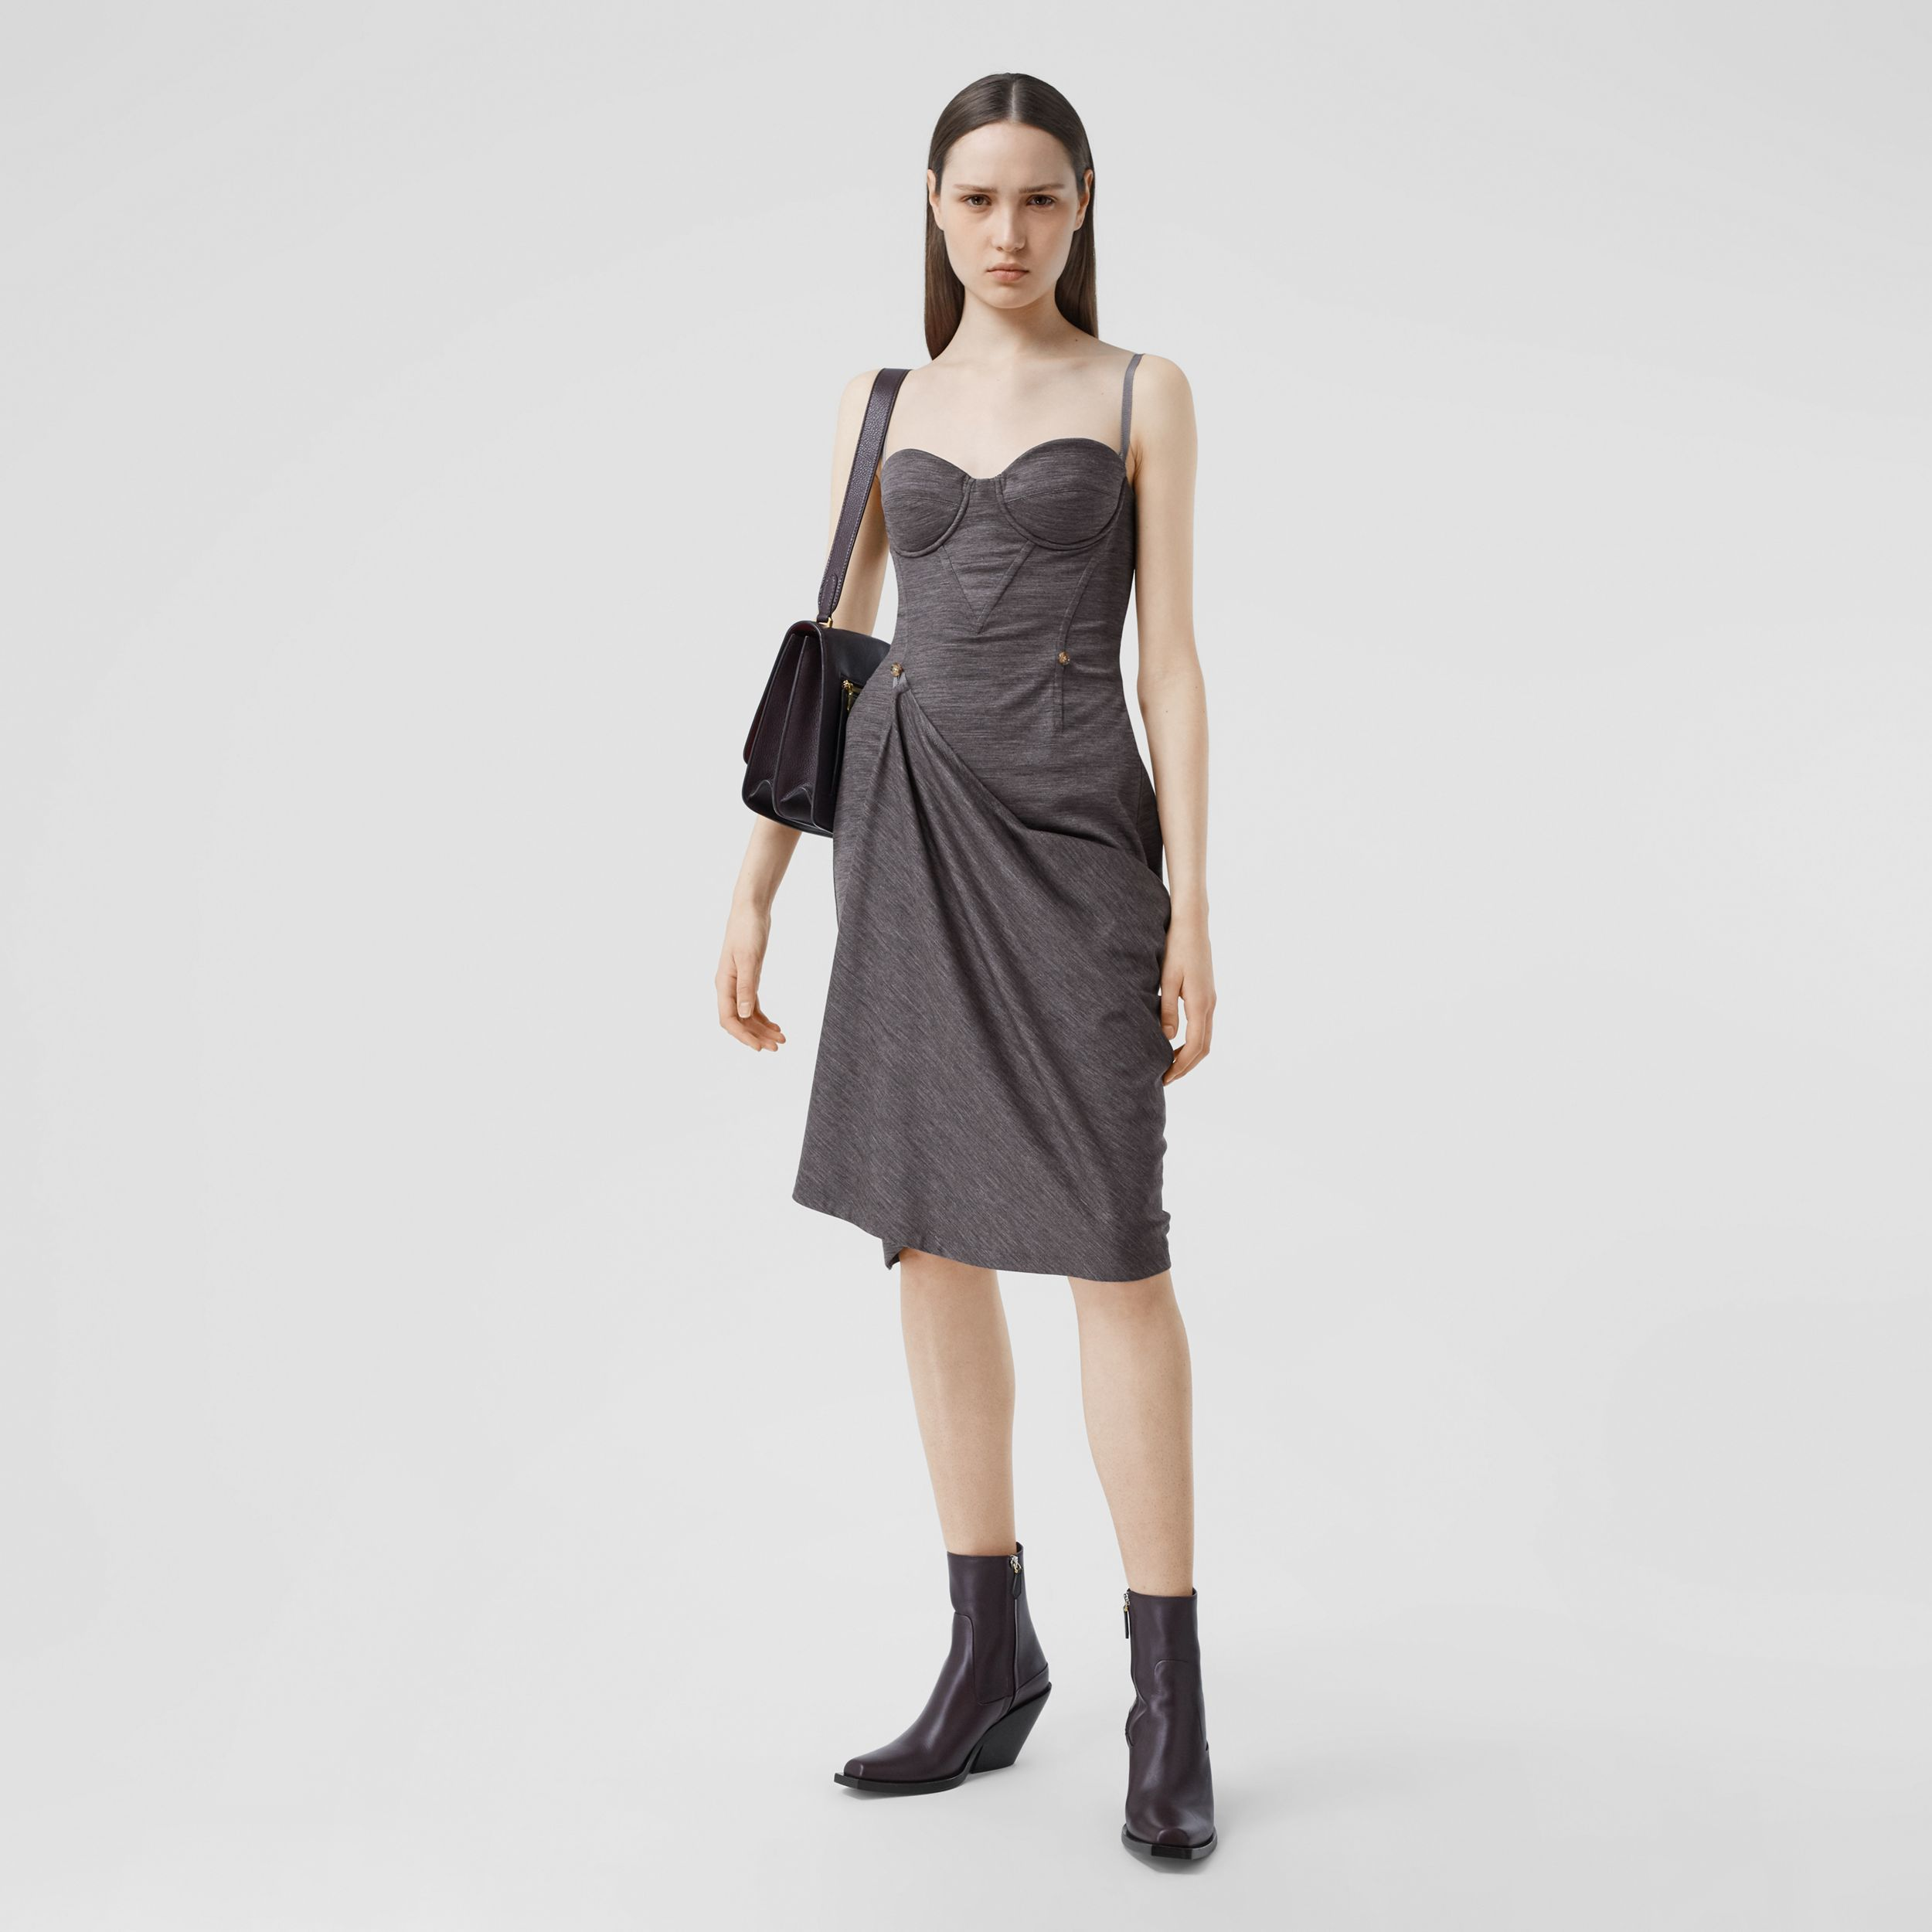 Asymmetric Technical Wool Corset Dress in Charcoal Grey - Women | Burberry Australia - 1